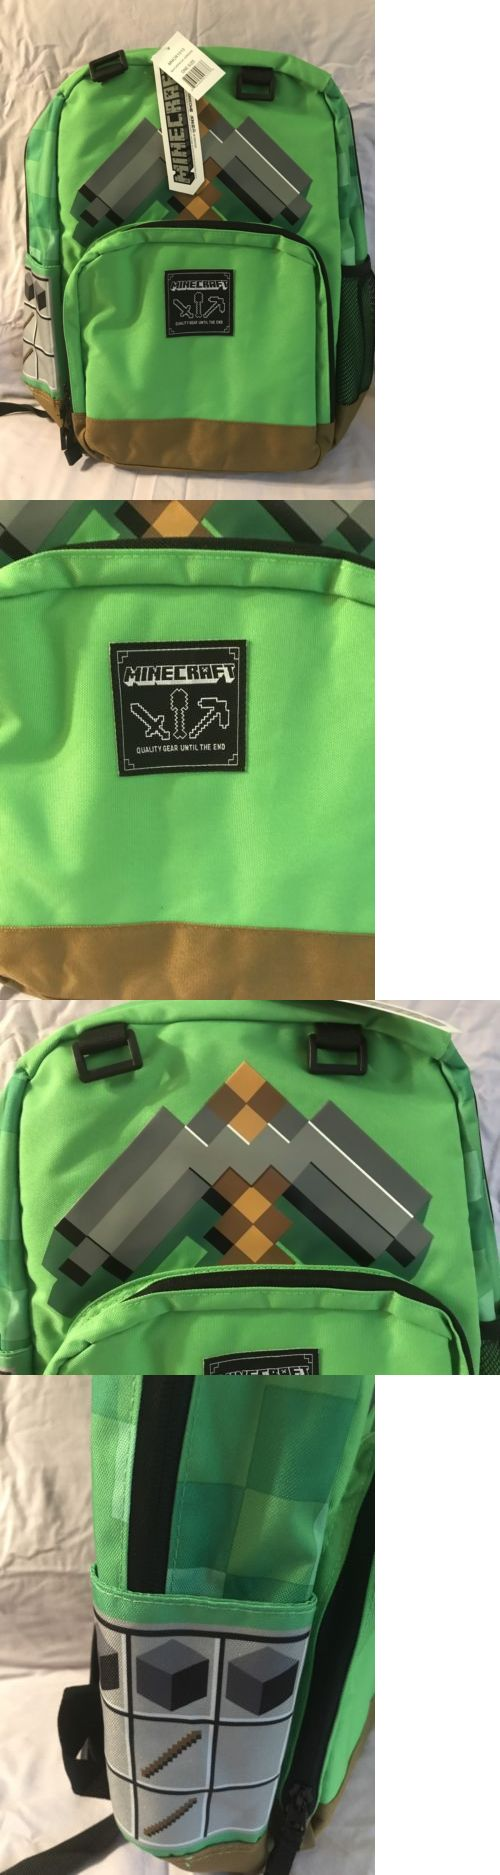 Backpacks and Bags 57882: Minecraft 17 Pickaxe Adventure School Backpack Nwt -> BUY IT NOW ONLY: $31.98 on eBay!